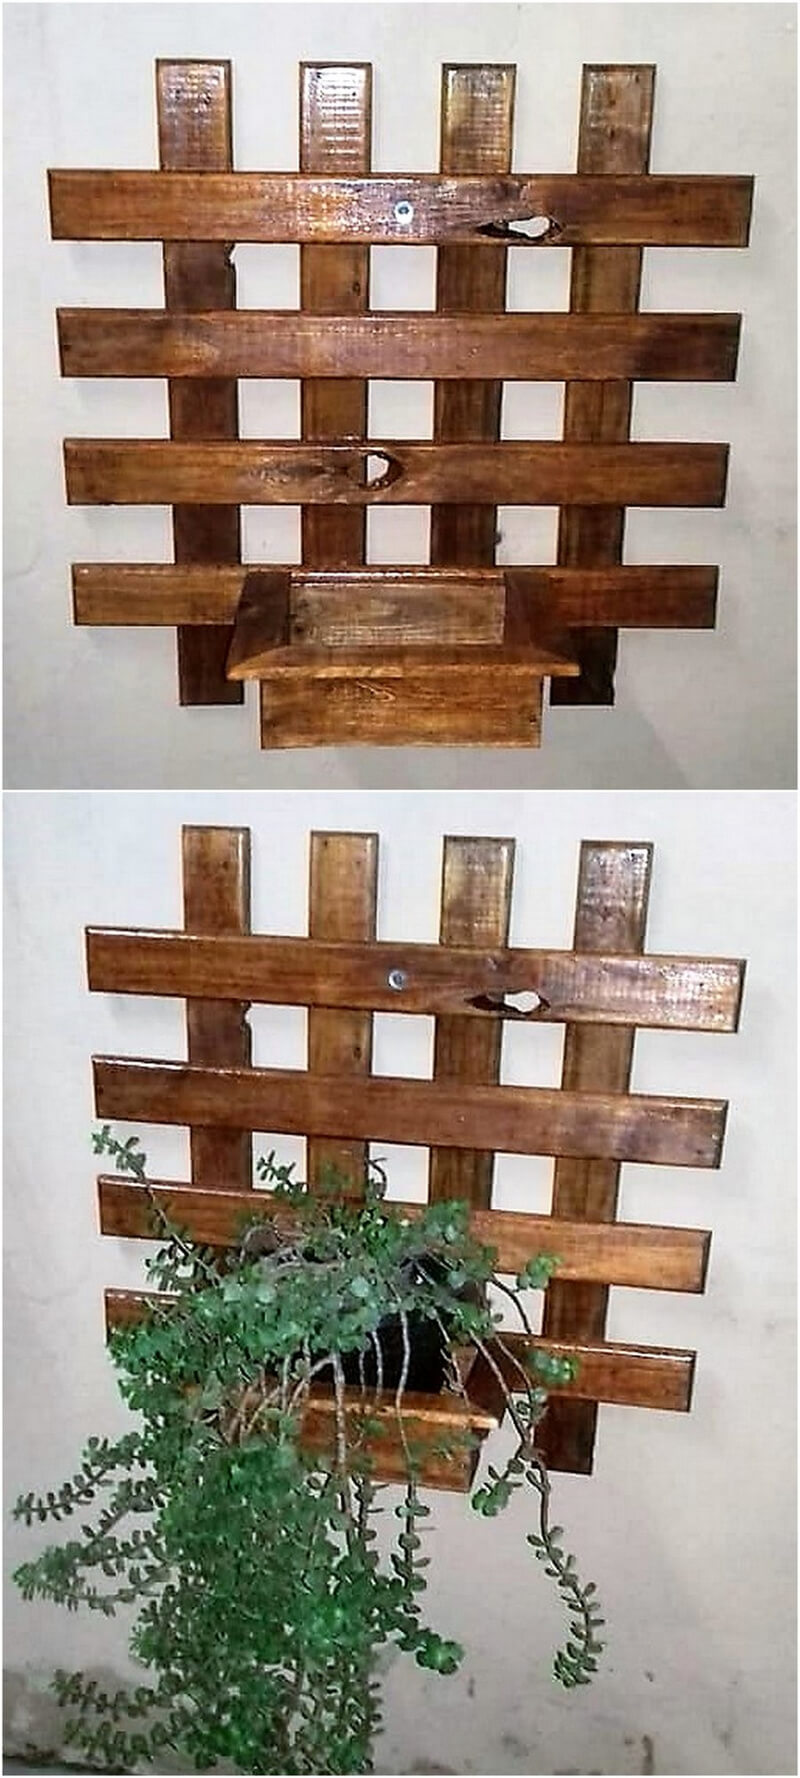 pallet wall planters designs 3